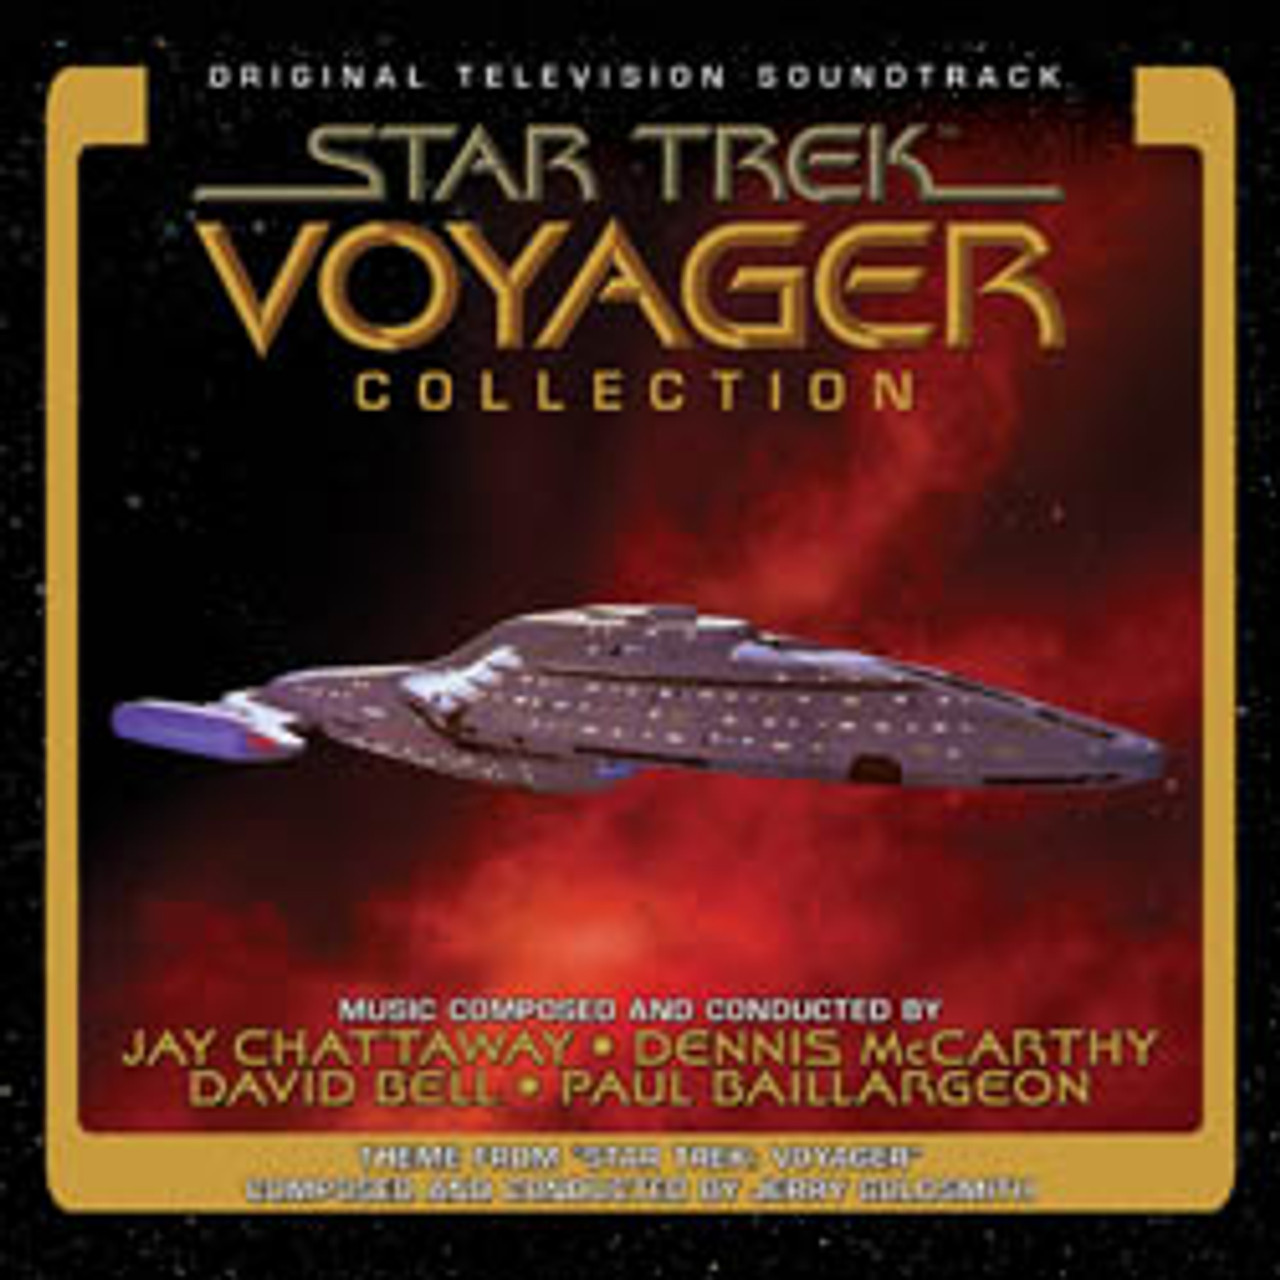 Star Trek Voyager Collection Limited Edition 4 Cd Set